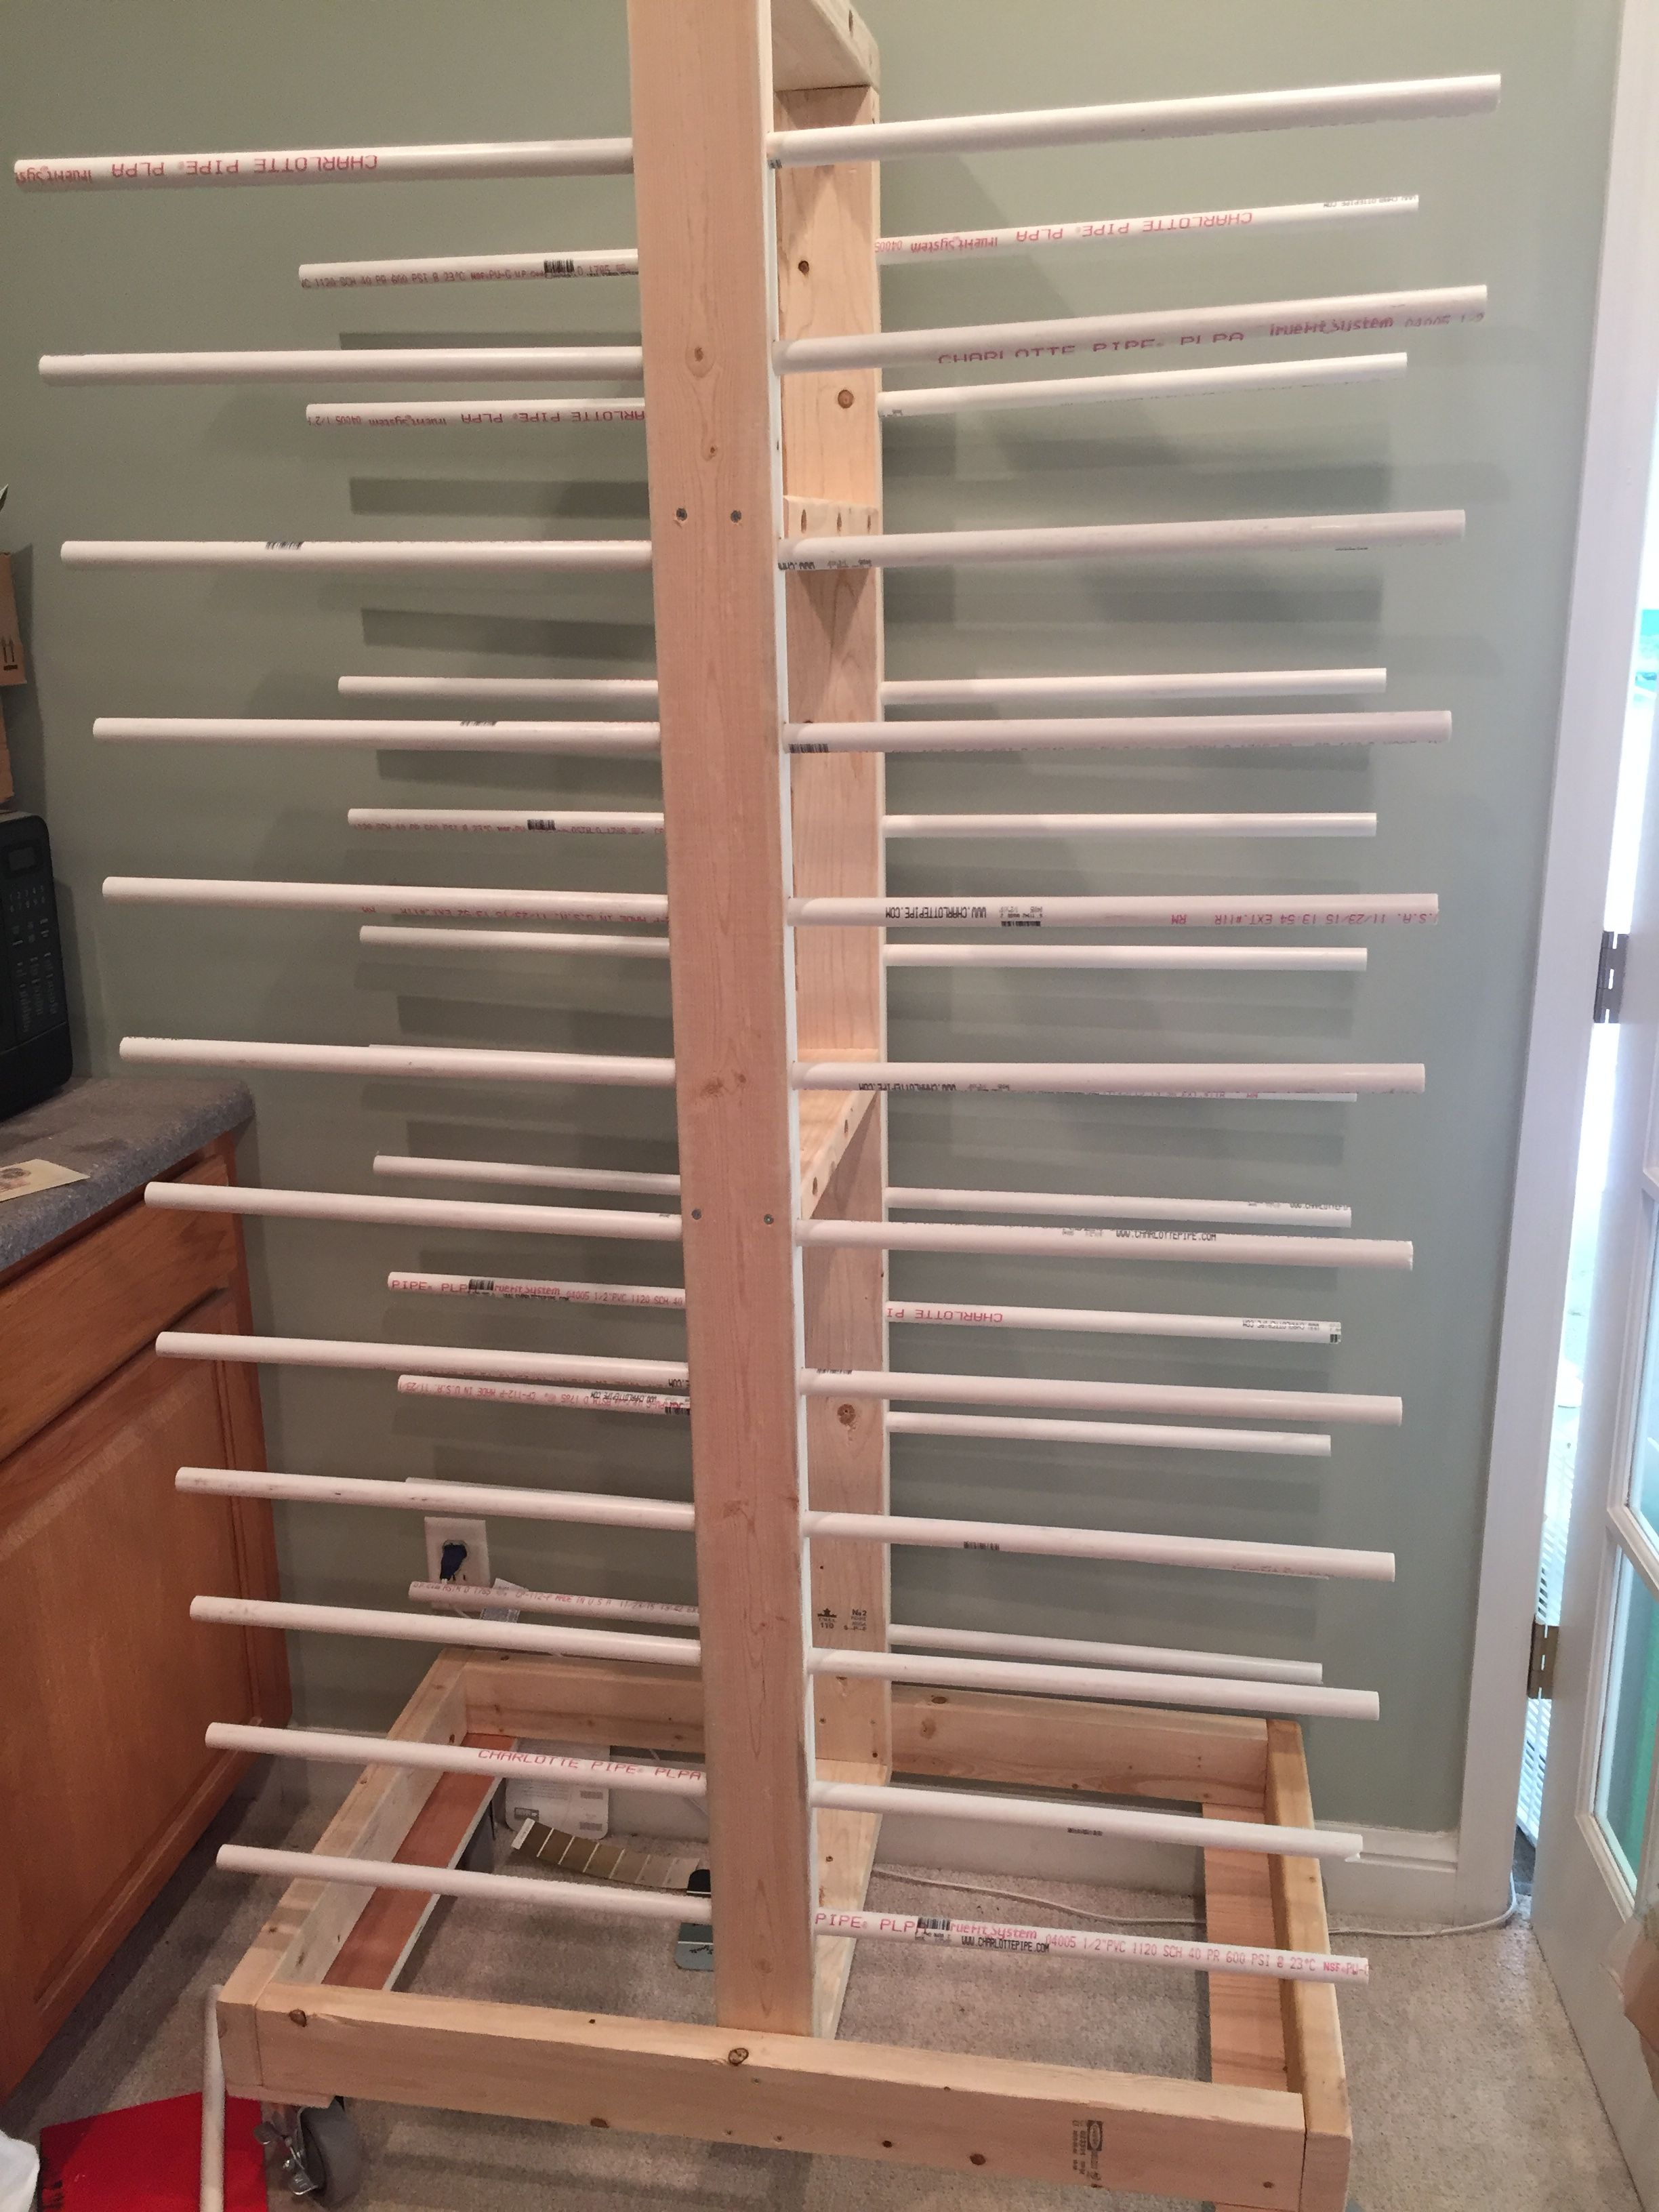 Cabinet Door Drying Rack Classy Diy Cabinet Door Drying Rack From Pvc Pipe & 2X4 Lumber Wood Decorating Inspiration